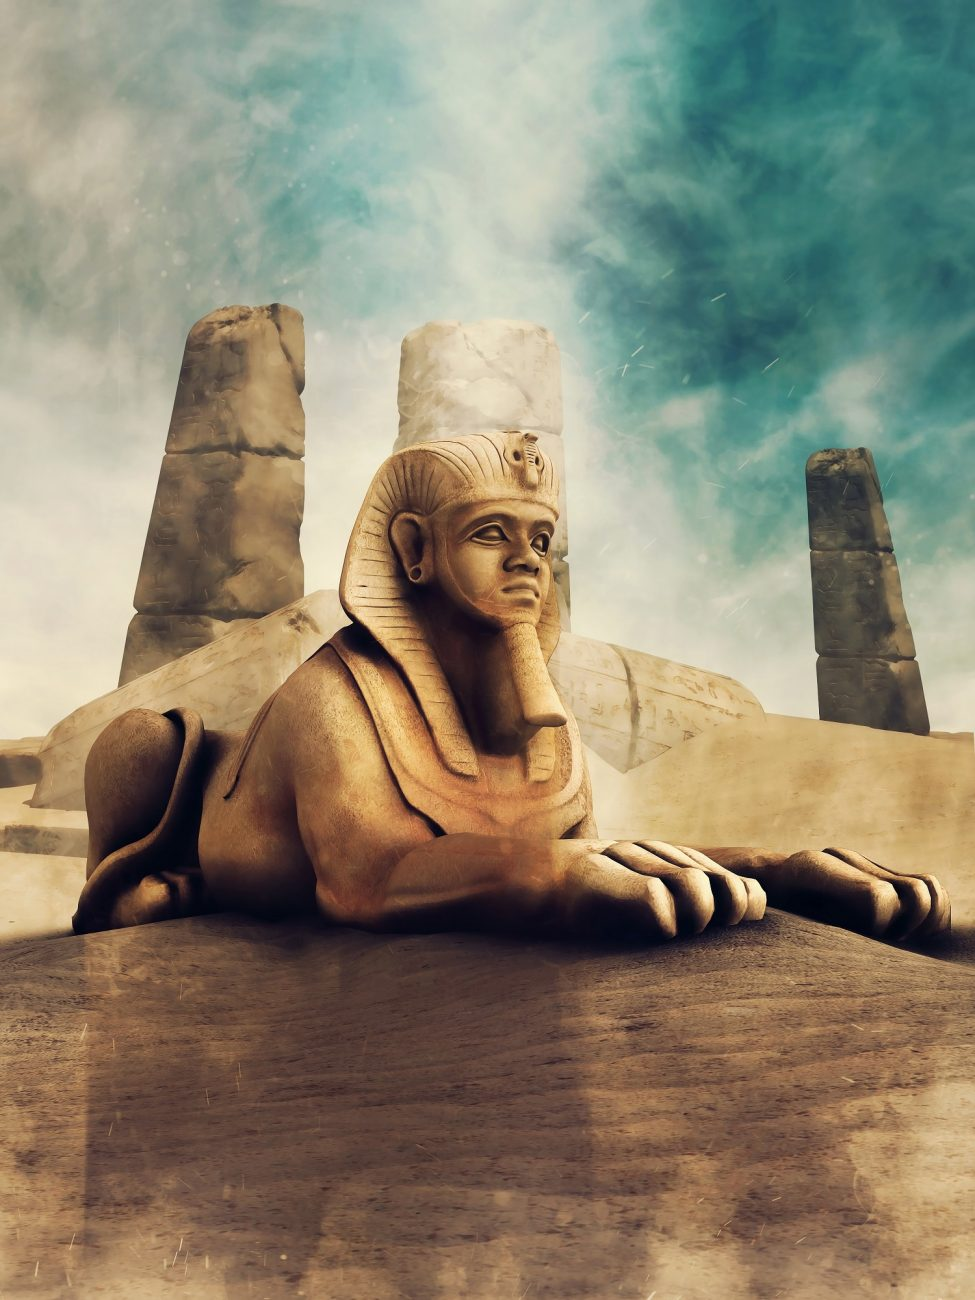 A rendering of a Sphinx statue. Shutterstock.